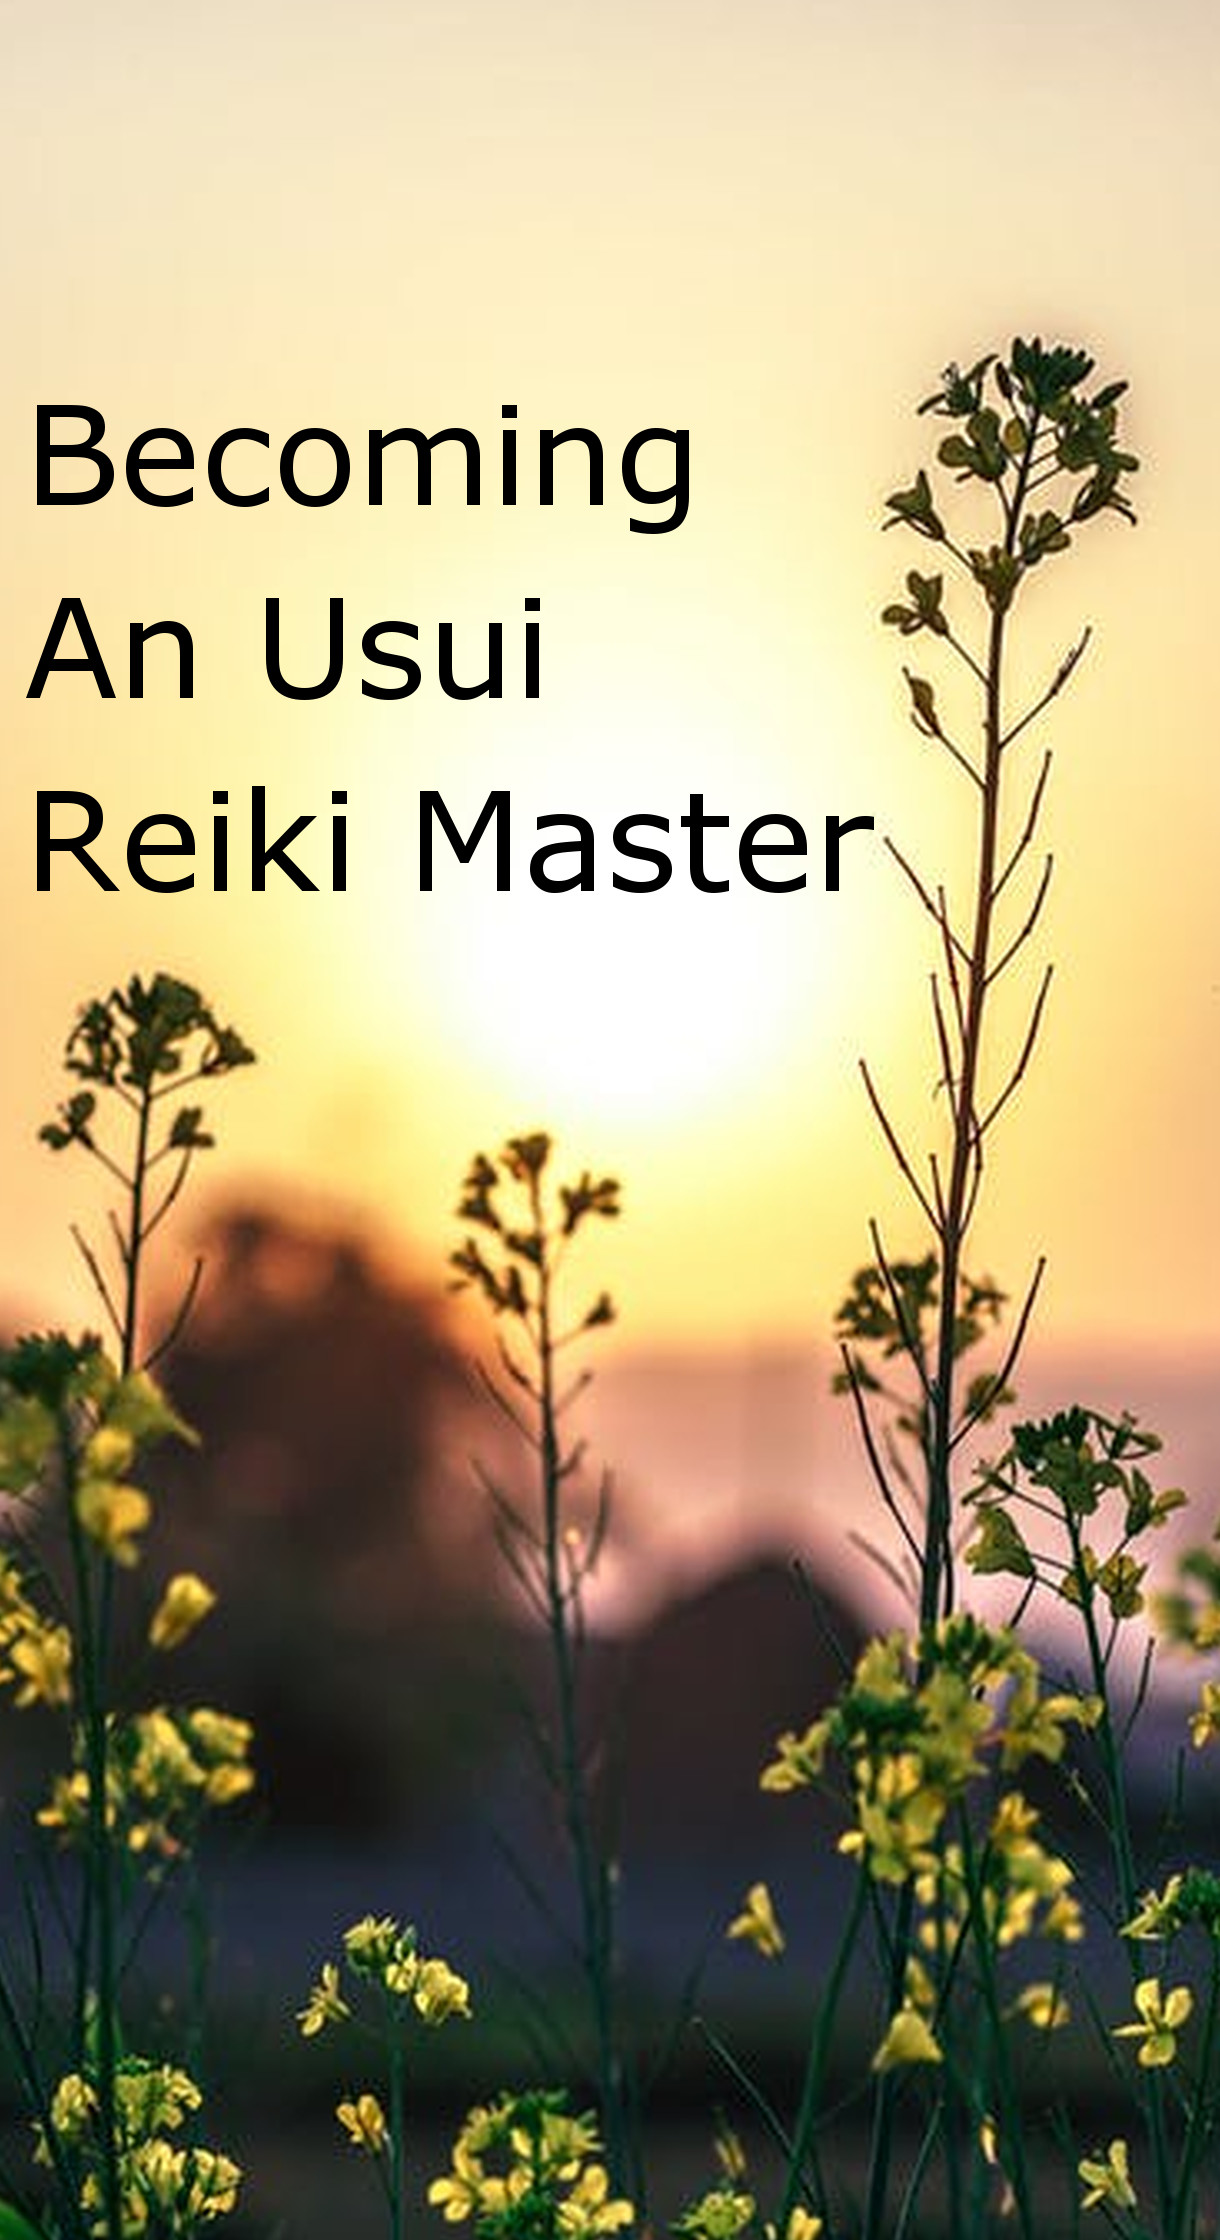 Becoming An Usui Reiki Master